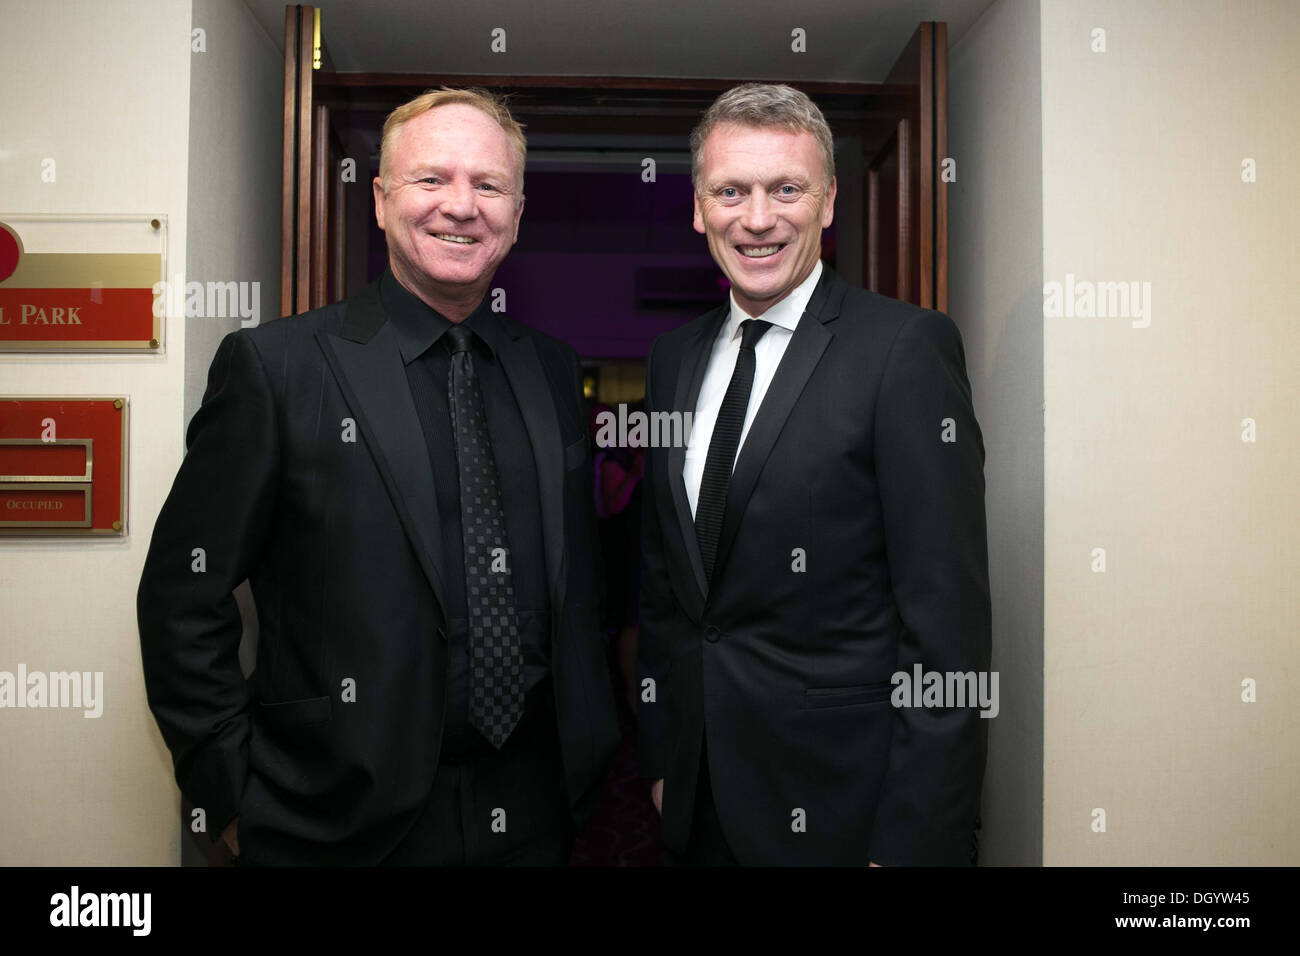 Alex McLeish (l) and David Moyes - Stock Image